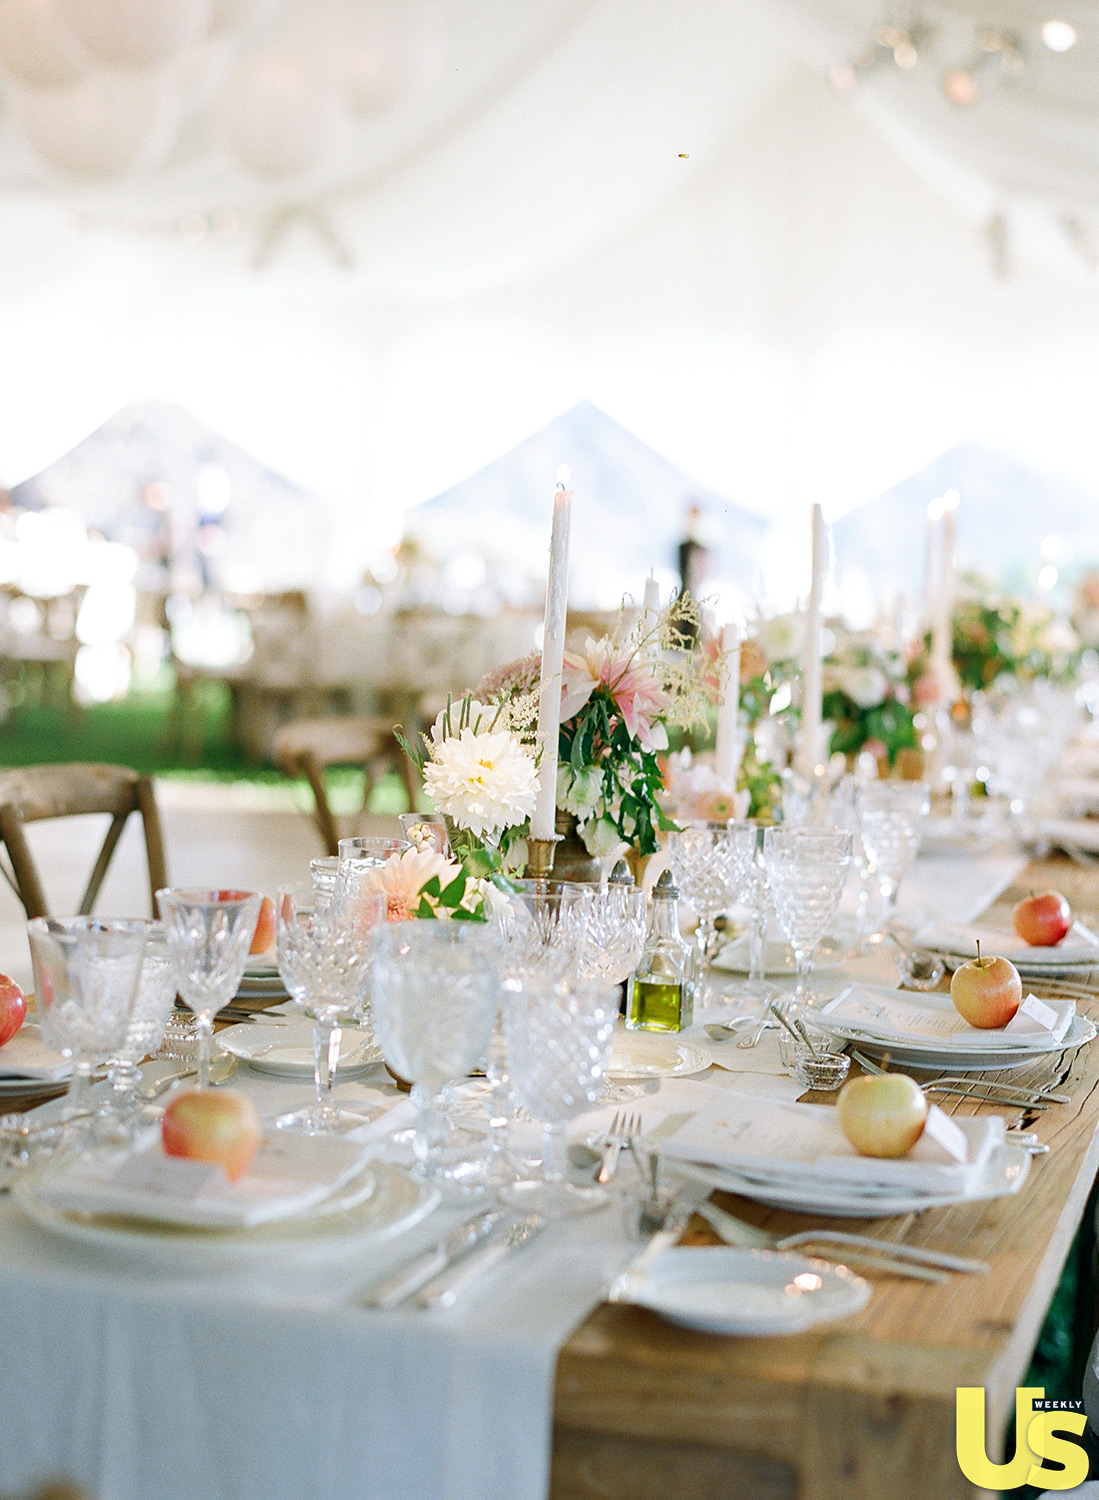 wedding | Epicurean Group